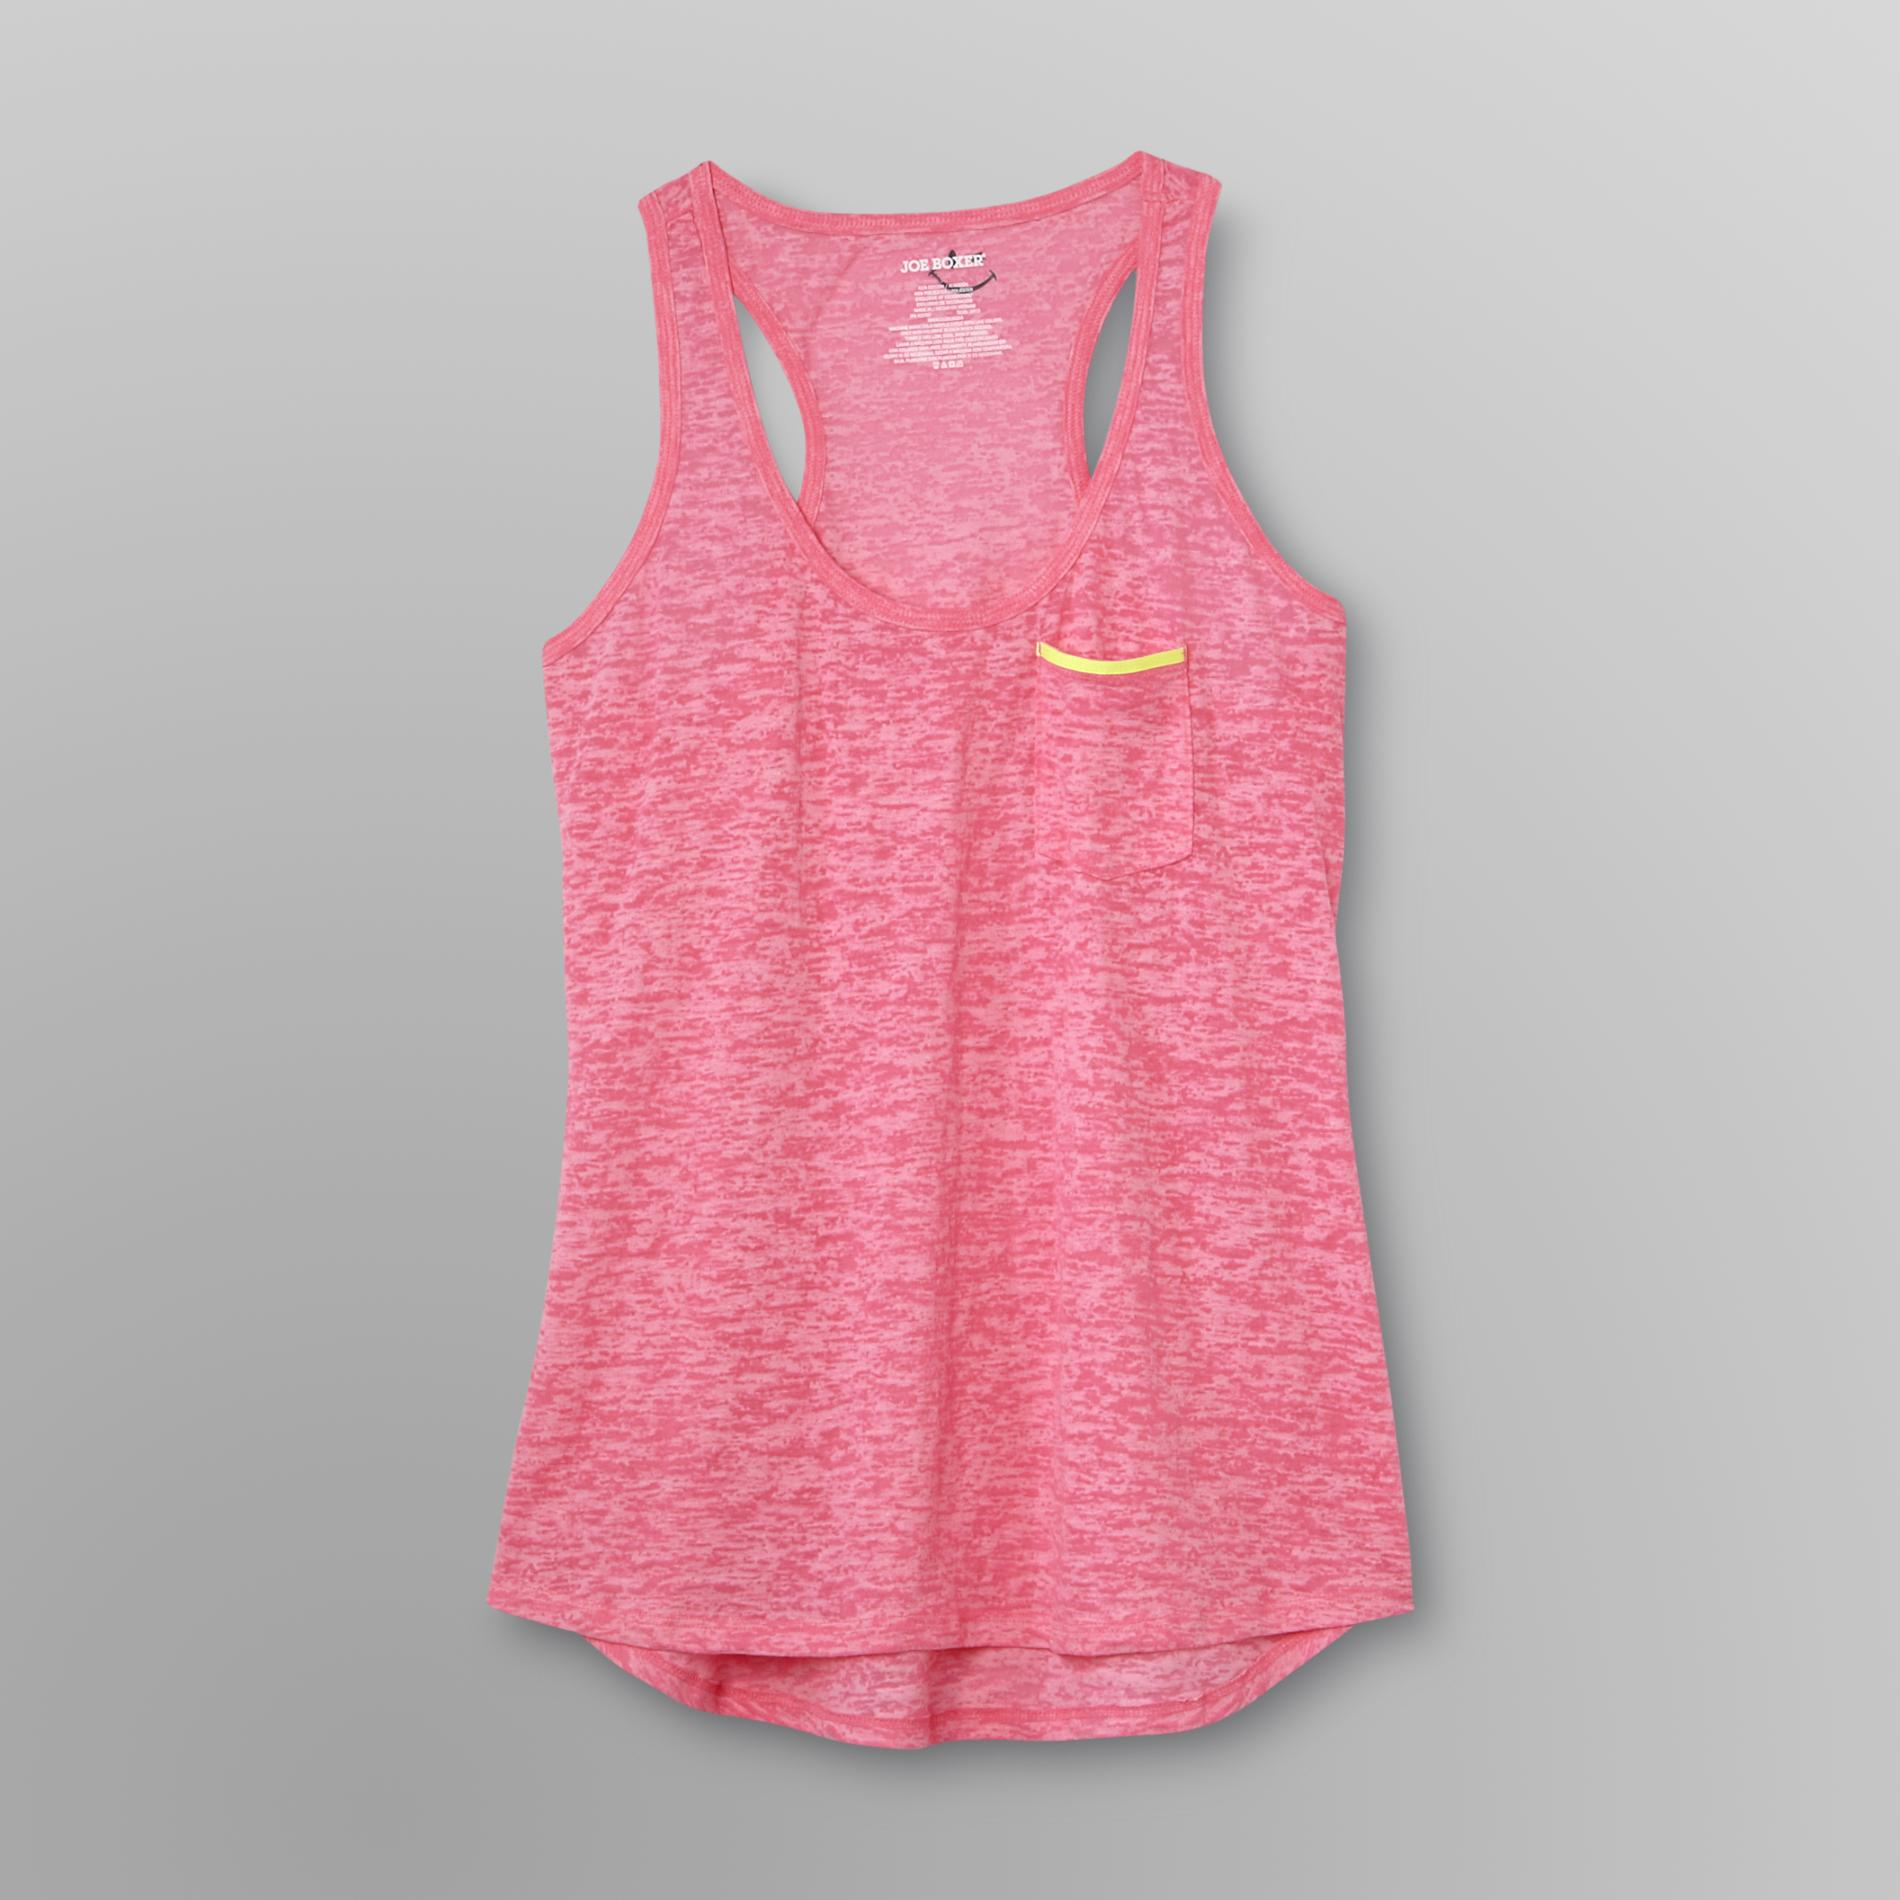 Joe Boxer Women's Racerback Tank Top - Burnout at Kmart.com